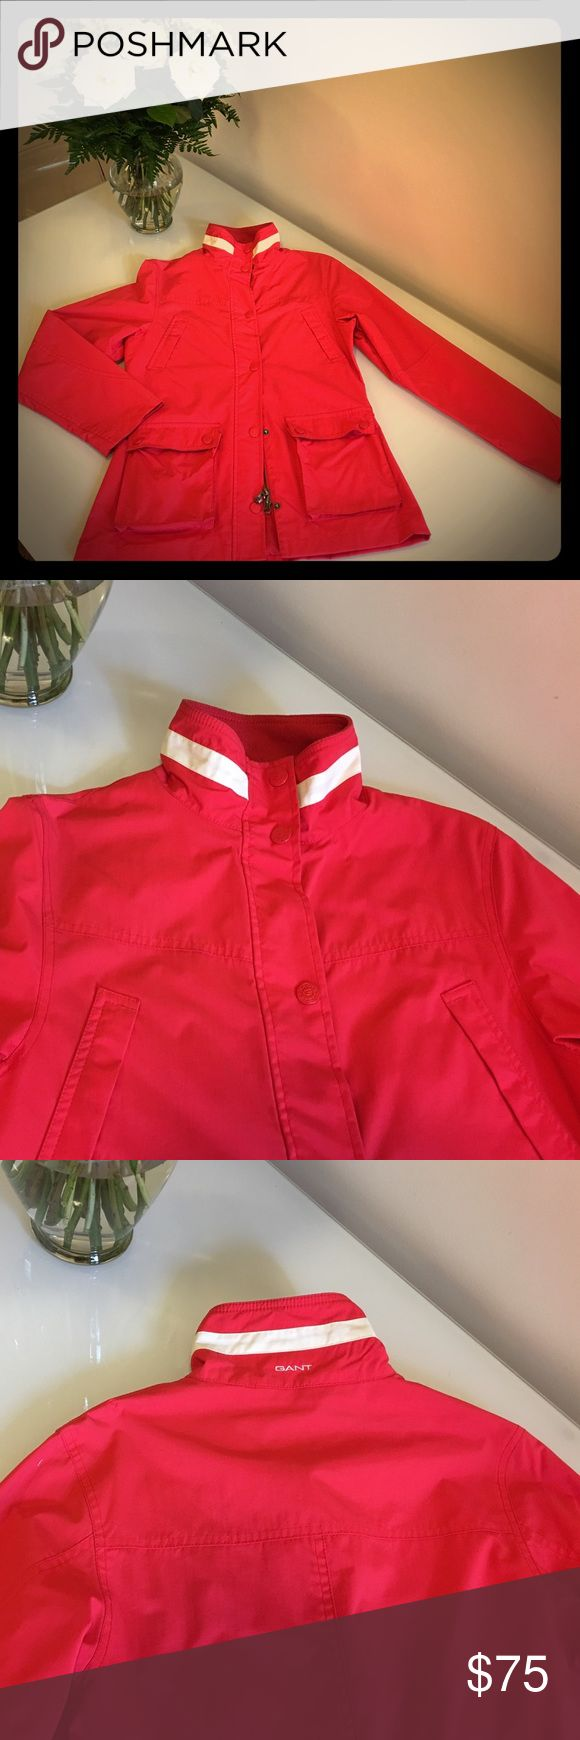 Gant Wind jacket Bright red wind jacket from Gant. Brand new. Ideal for windy days or to put over warm sweaters and go for a boat ride! Gant Jackets & Coats Utility Jackets